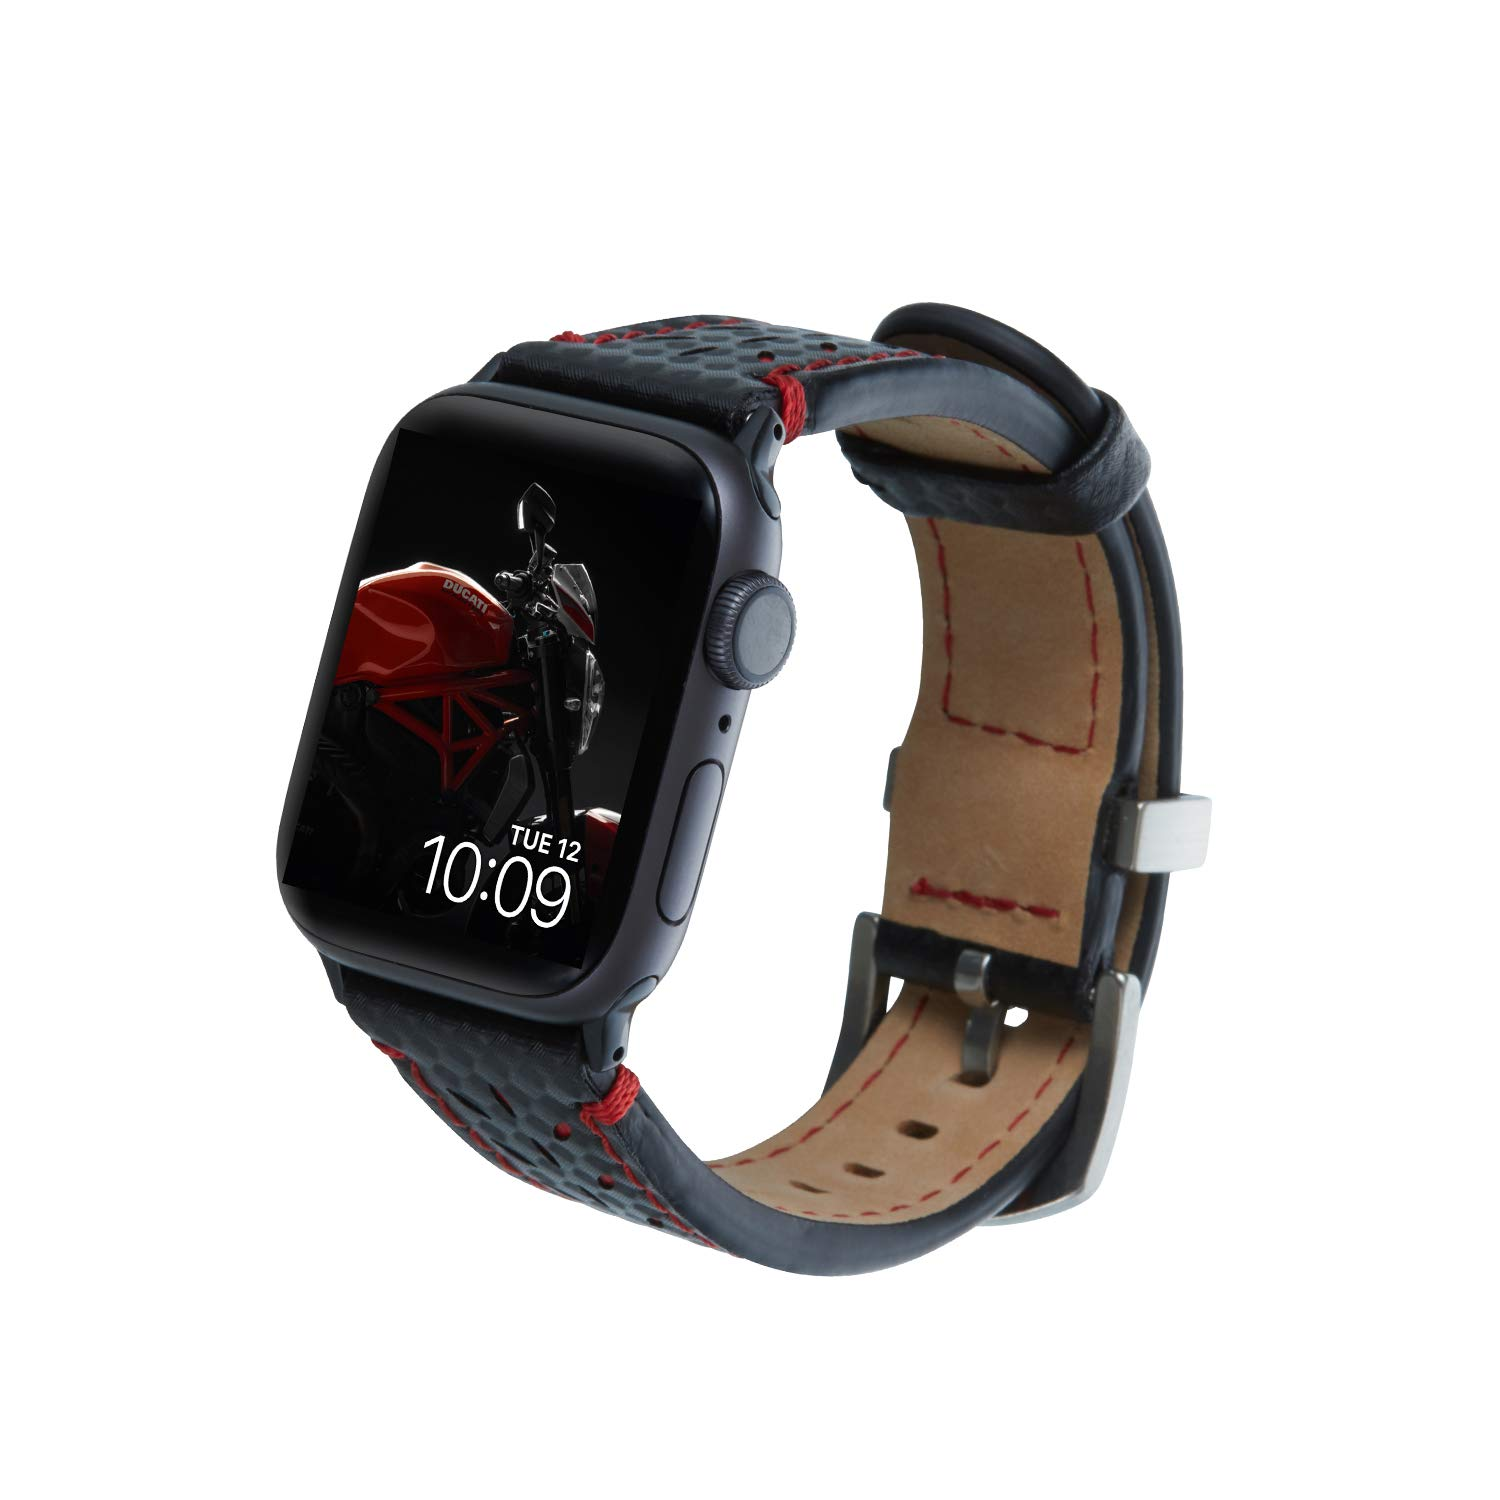 Mr. Time Smart Watch Band for Apple Watch 44mm 42mm, [Ducati Special Edition] Genuine Leather Sport Strap Replacement Bands Compatible for Apple Watch Series 4, 3, 2, 1 - Black